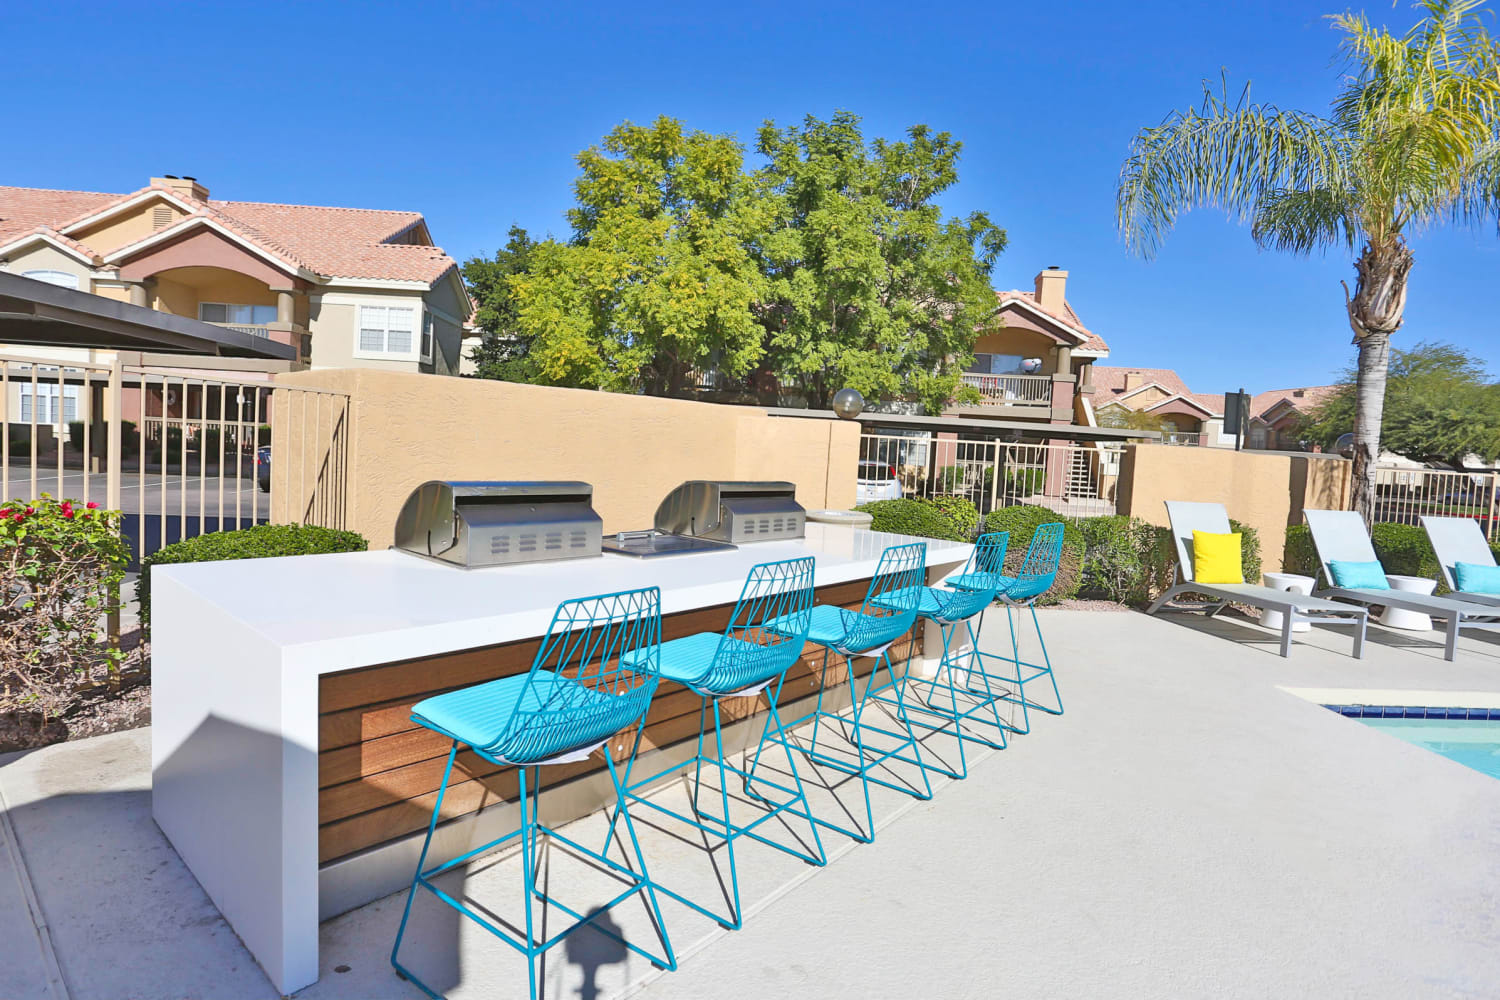 Barbecue area poolside at Sonoran Vista Apartments in Scottsdale, Arizona